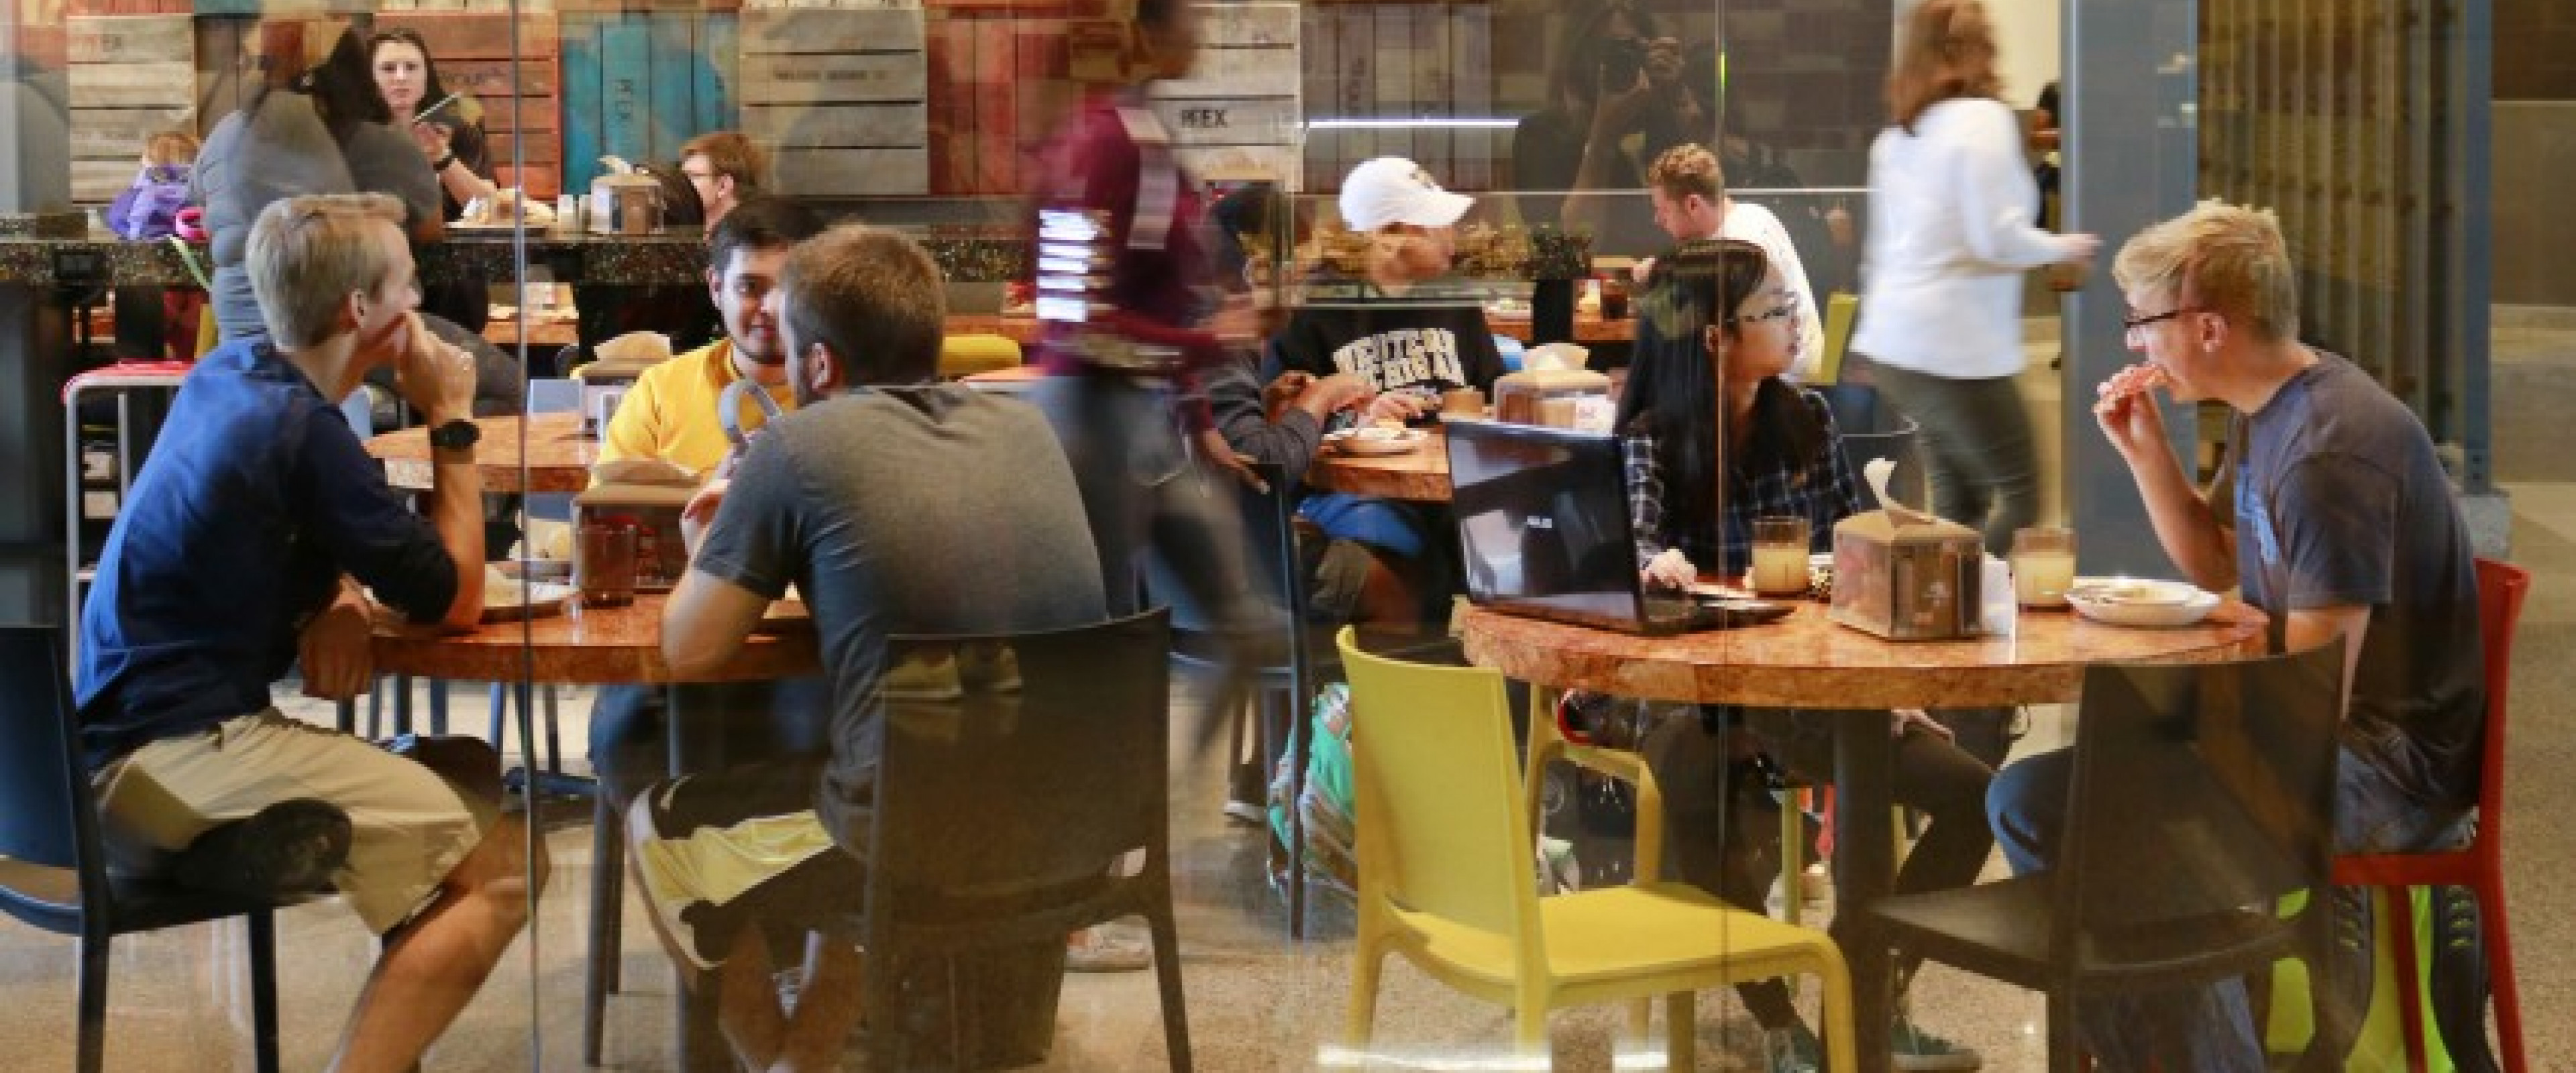 WMU students in Valley Dining Center